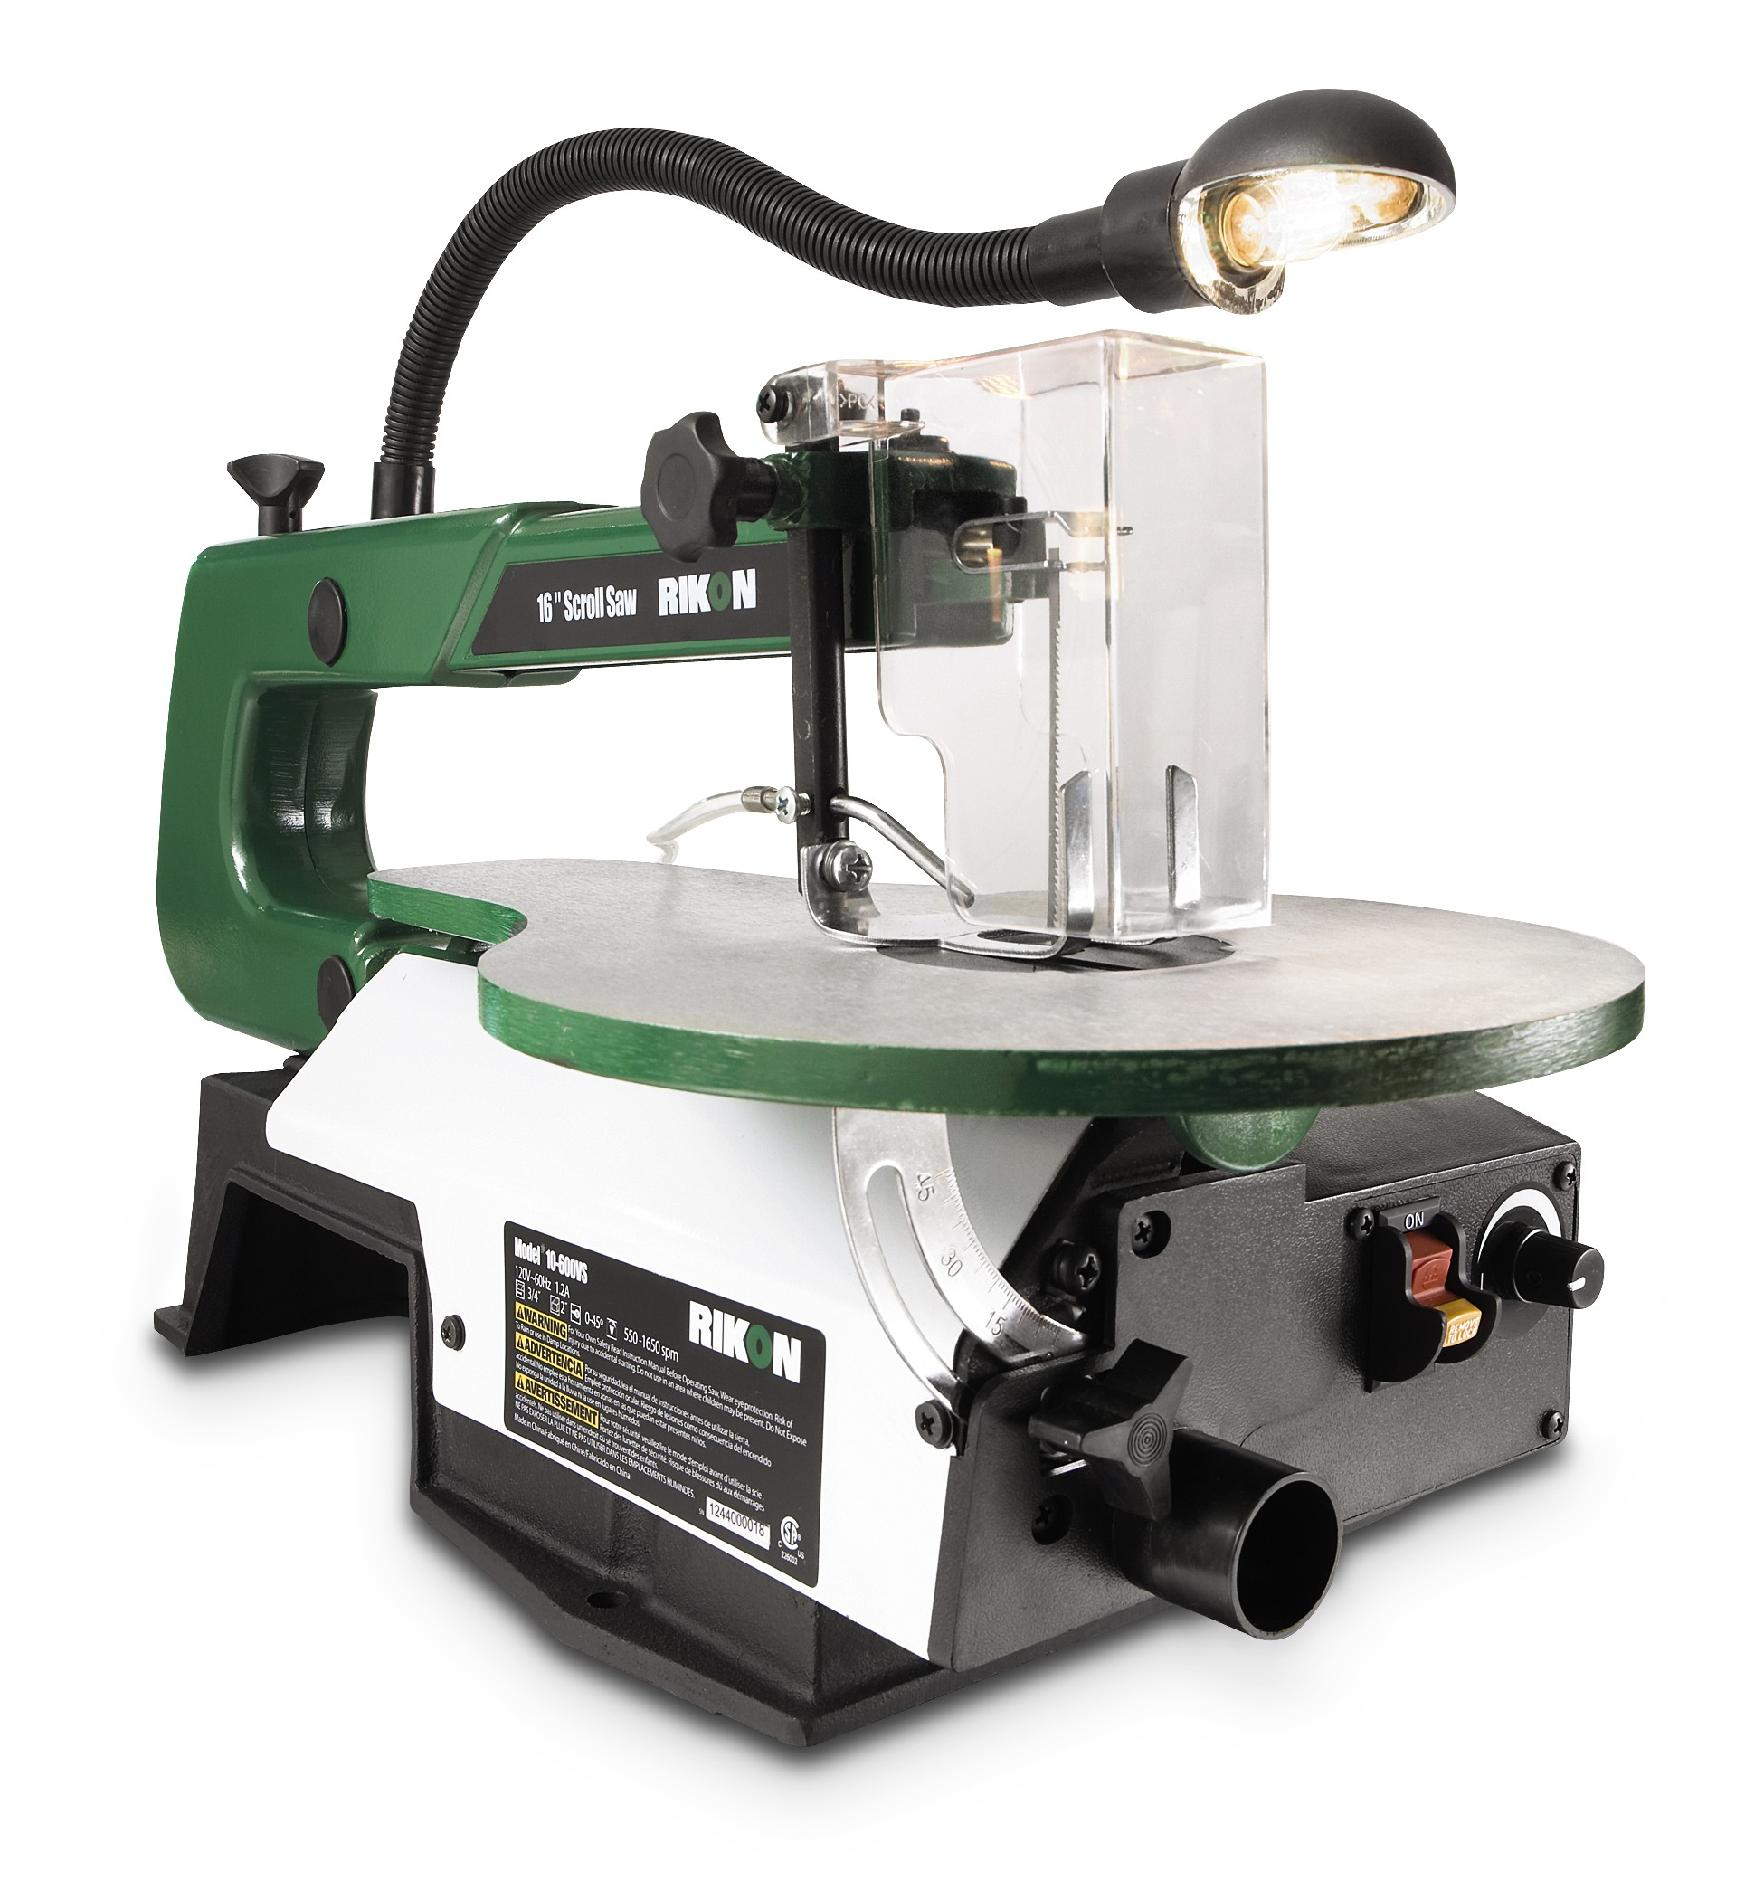 Rikon 16-Inch Scroll Saw with Lamp